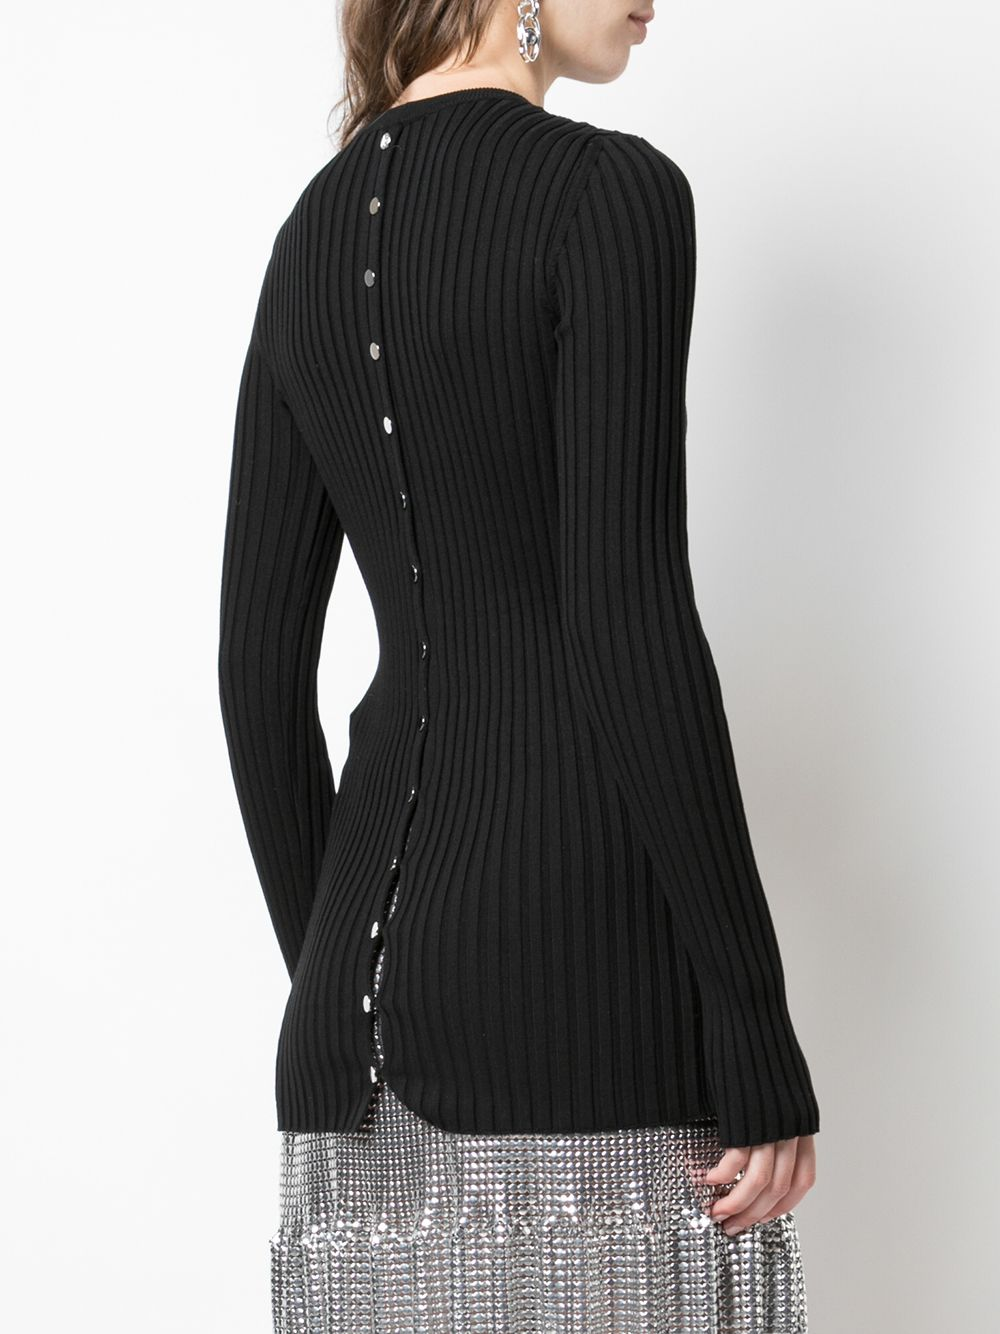 PACO RABANNE BUTTON BACK KNIT TOP